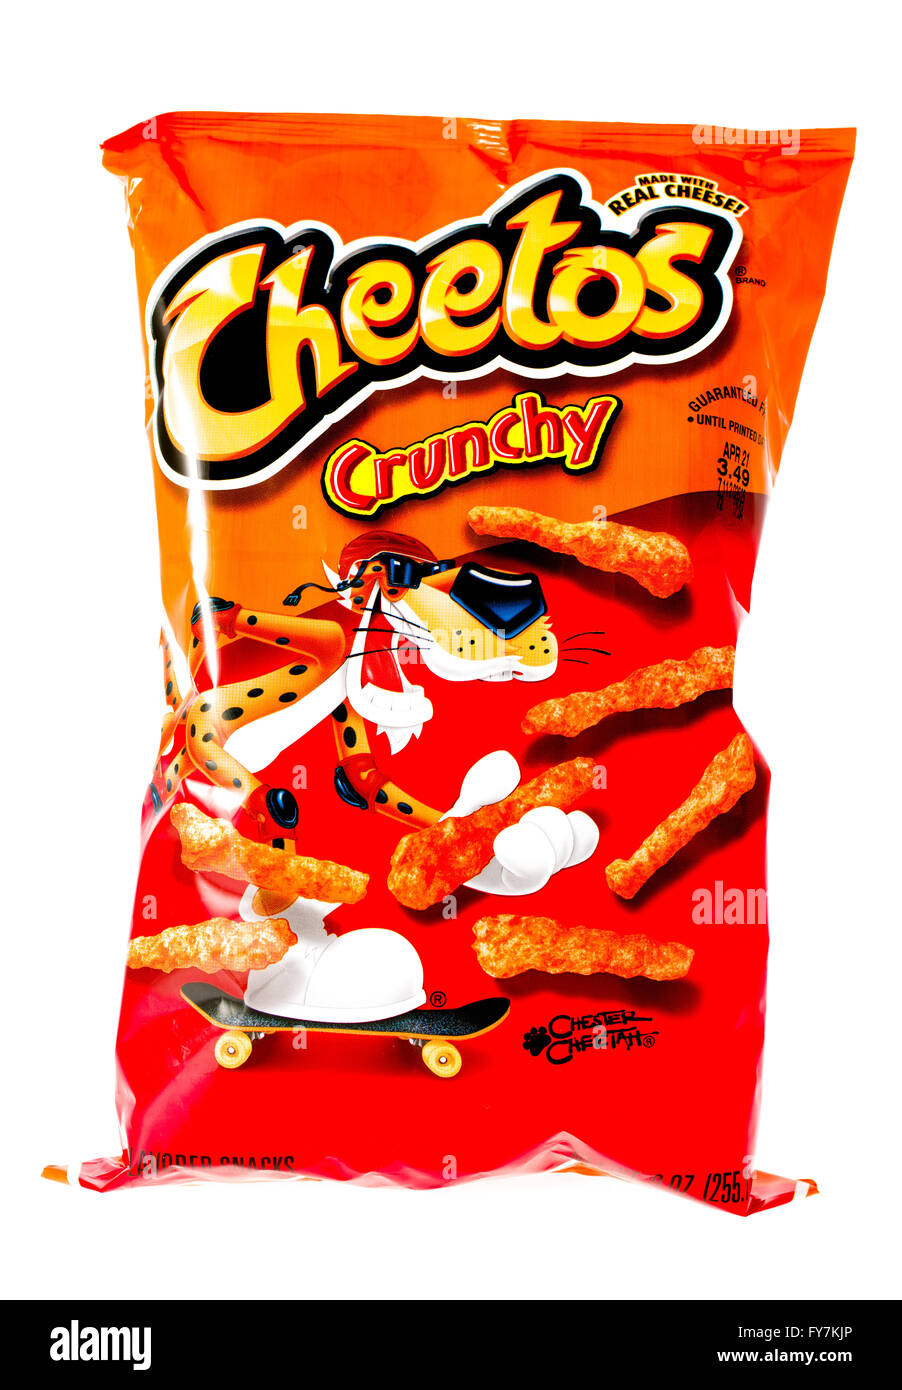 winneconne wi 9 april 2015 bag of cheetos which is owned by stock